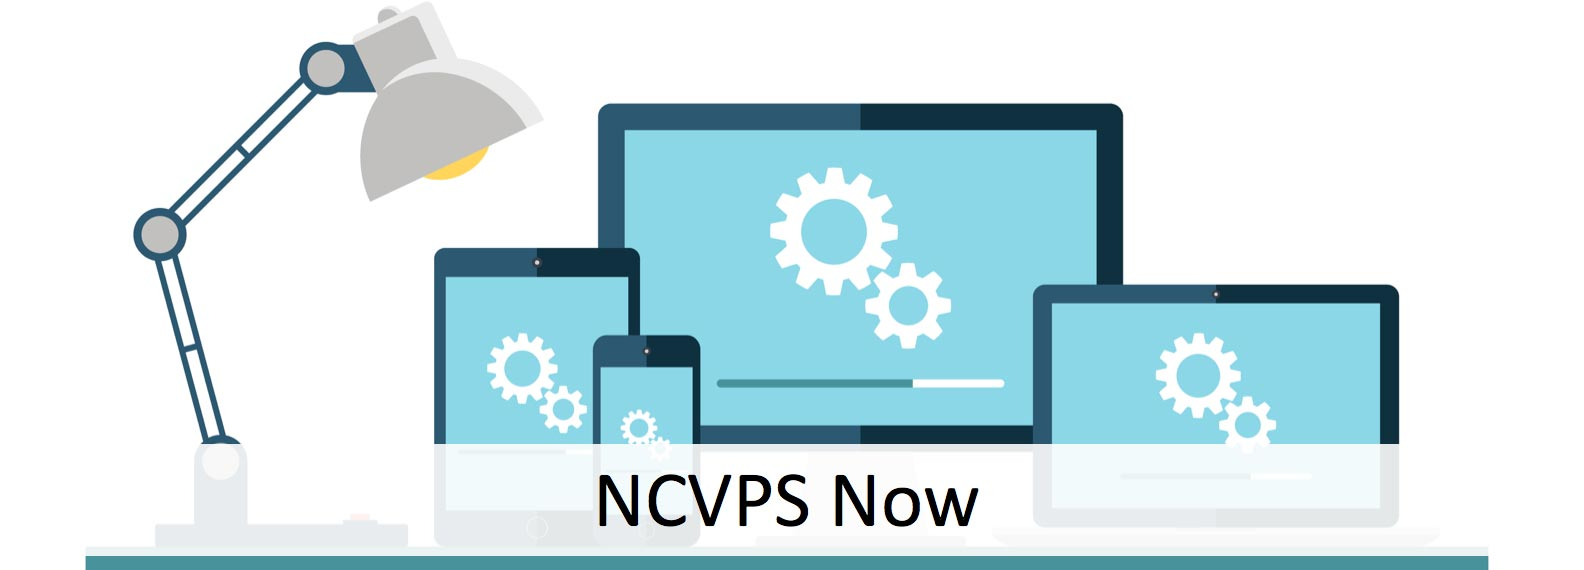 NCVPS Now Banner